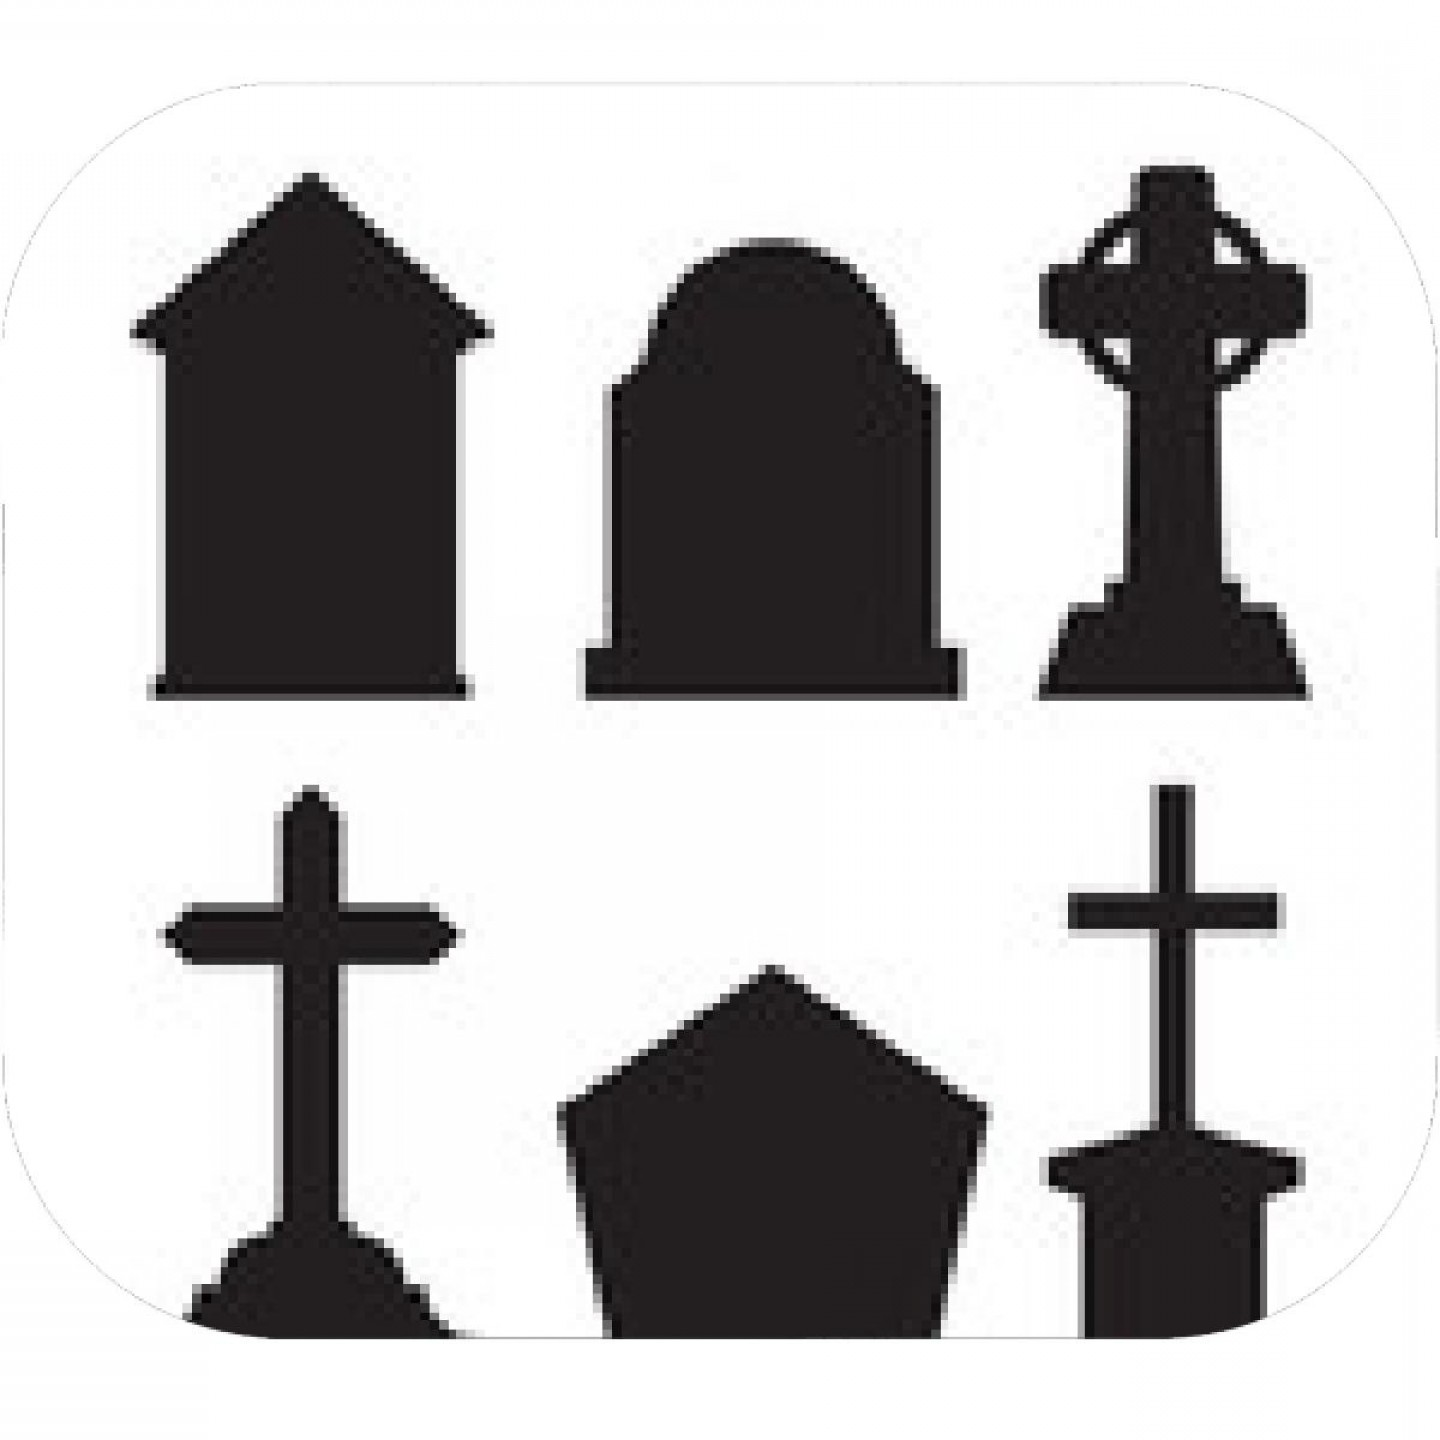 Gravestone Outline Vector: Set Of Grave Marker Vector On White Background Cemetery Mark Silhouette By Hand Drawing